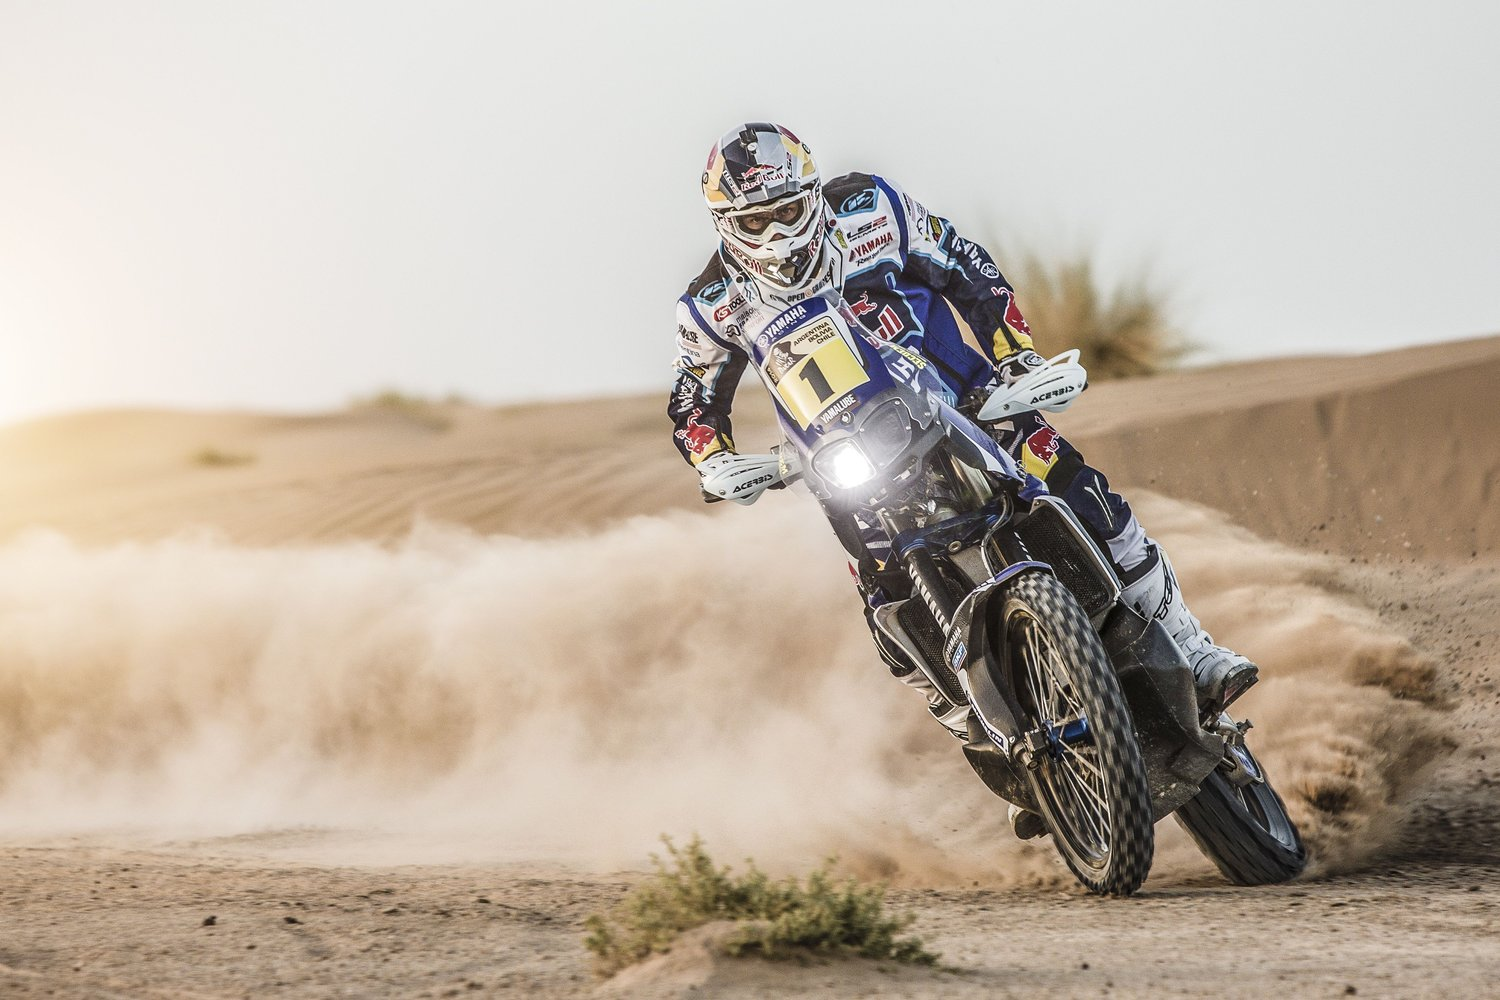 cyril-despres-dakar-rally-2014-yamaha-motor-france